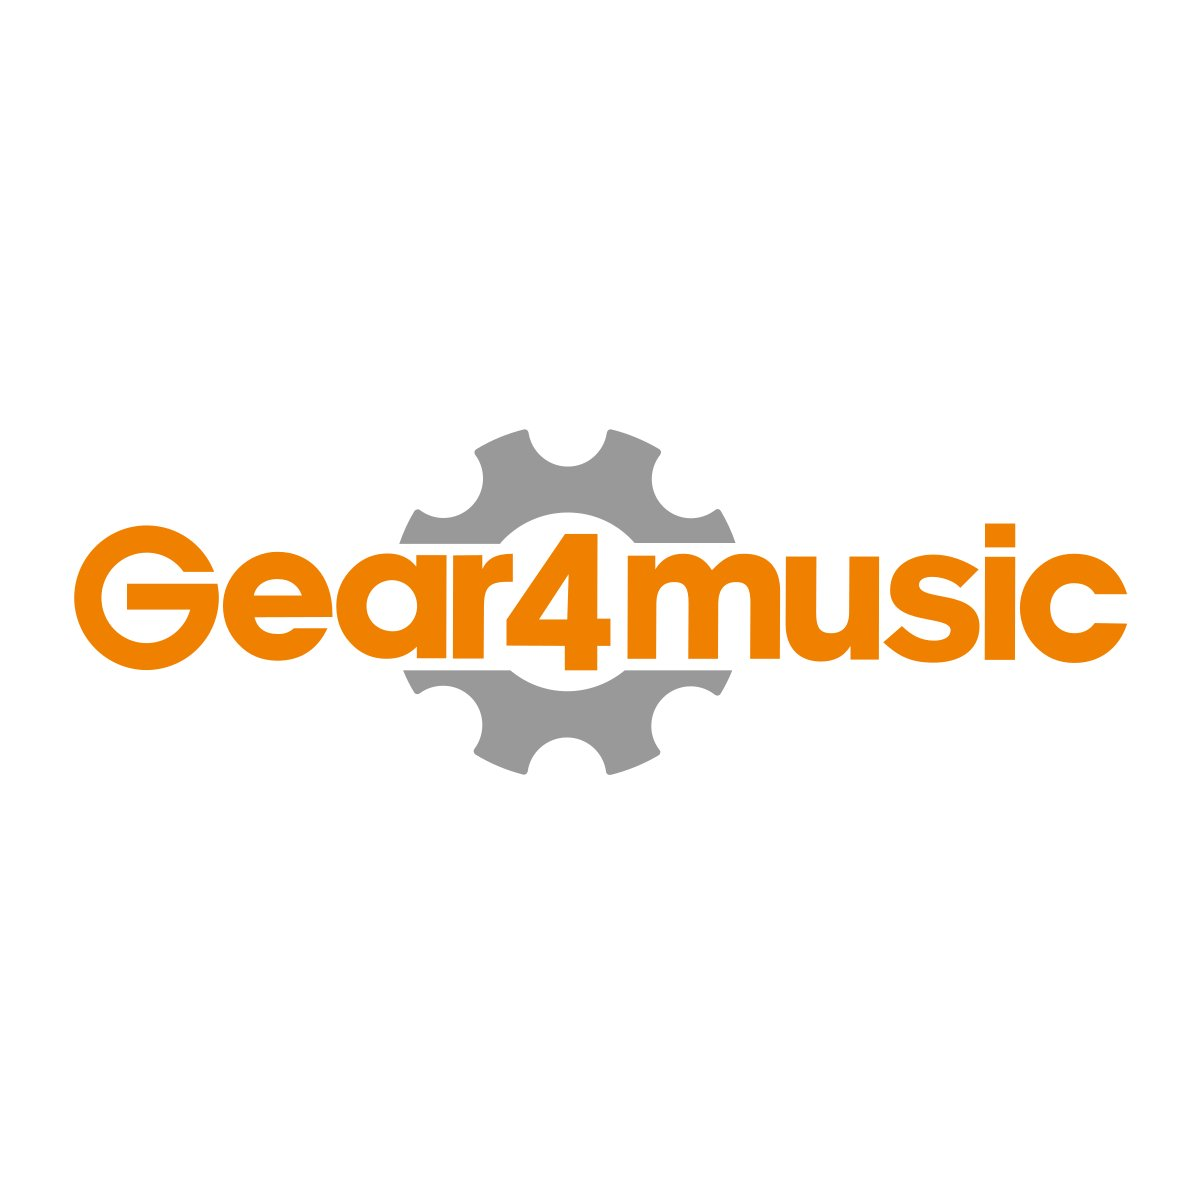 Portabacchette Gear4music